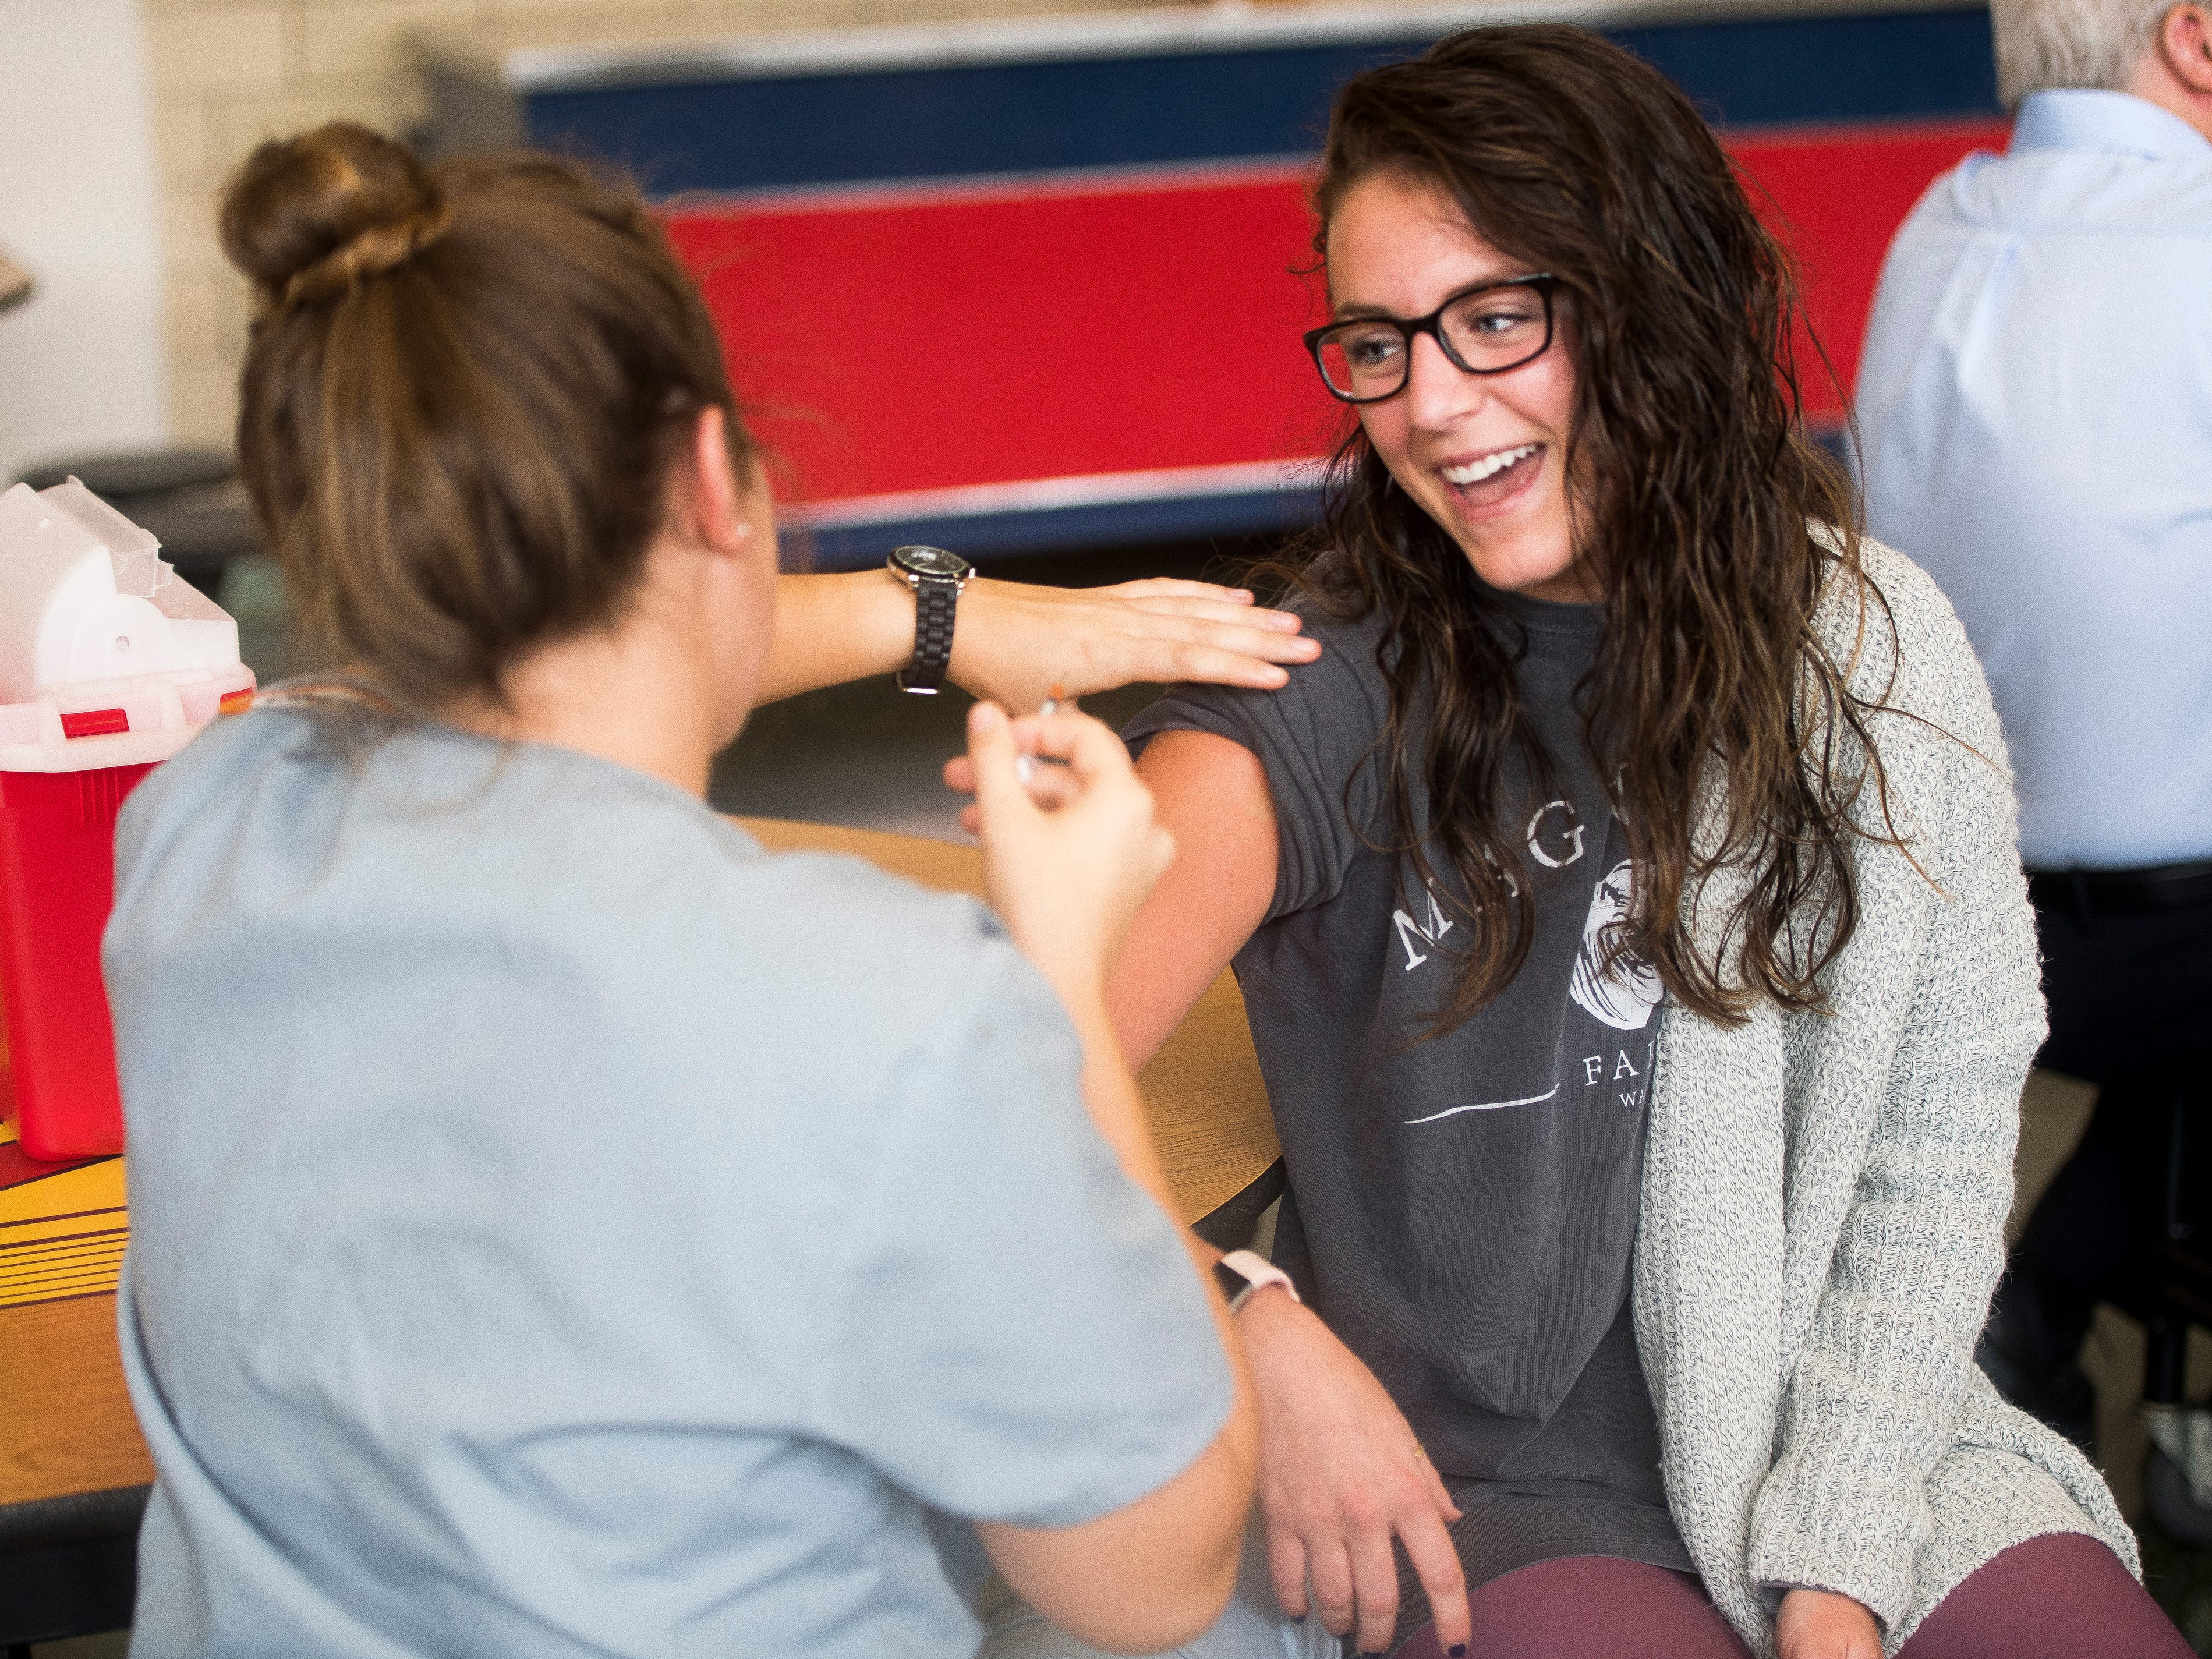 Brittni Woodall, right, laughs as she receives a flu shot from UT nursing student Ashleigh Guidara at West High School during Free Flu Shot Saturday on Saturday, October 12, 2018.